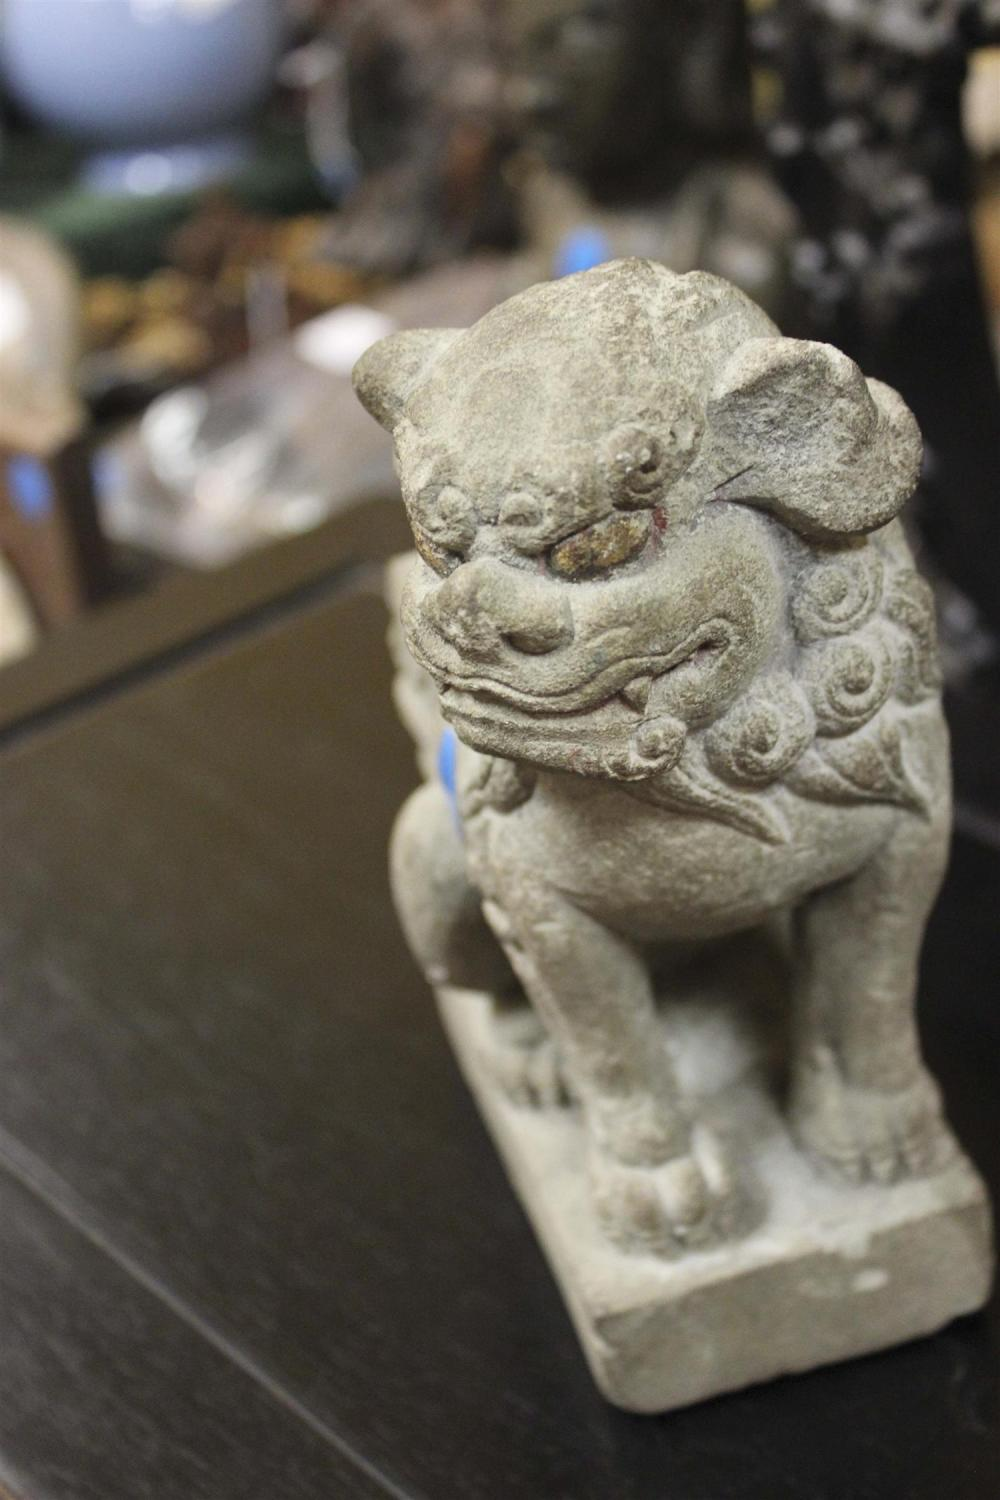 CHINESE SANDSTONE FIGURE OF A FU DOG Seated on a rectangular plinth. Traces of gilding to eyes. Height 7.5